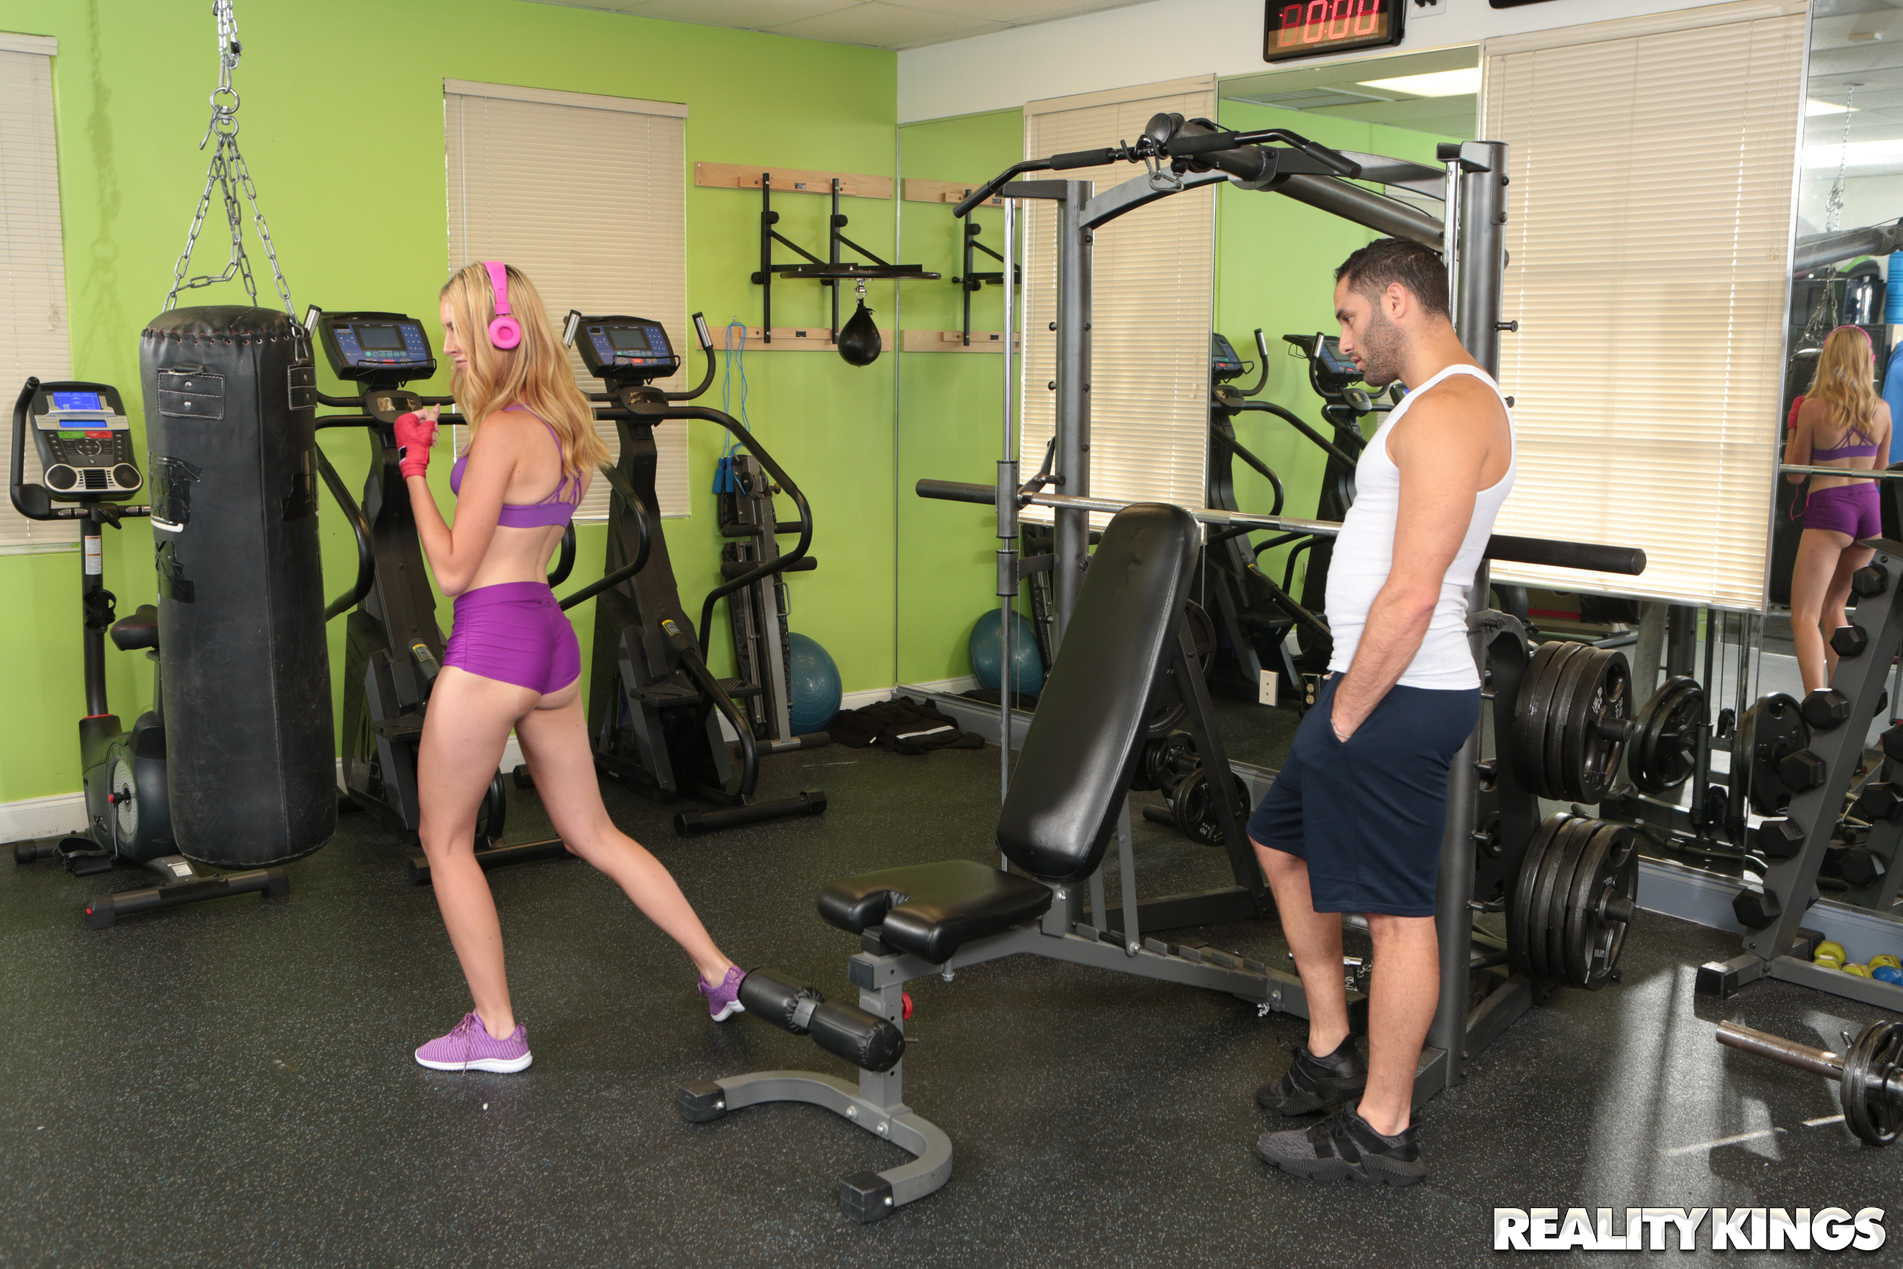 Reality Kings 'Body Blow Your Load' starring Mazzy Grace (Photo 36)